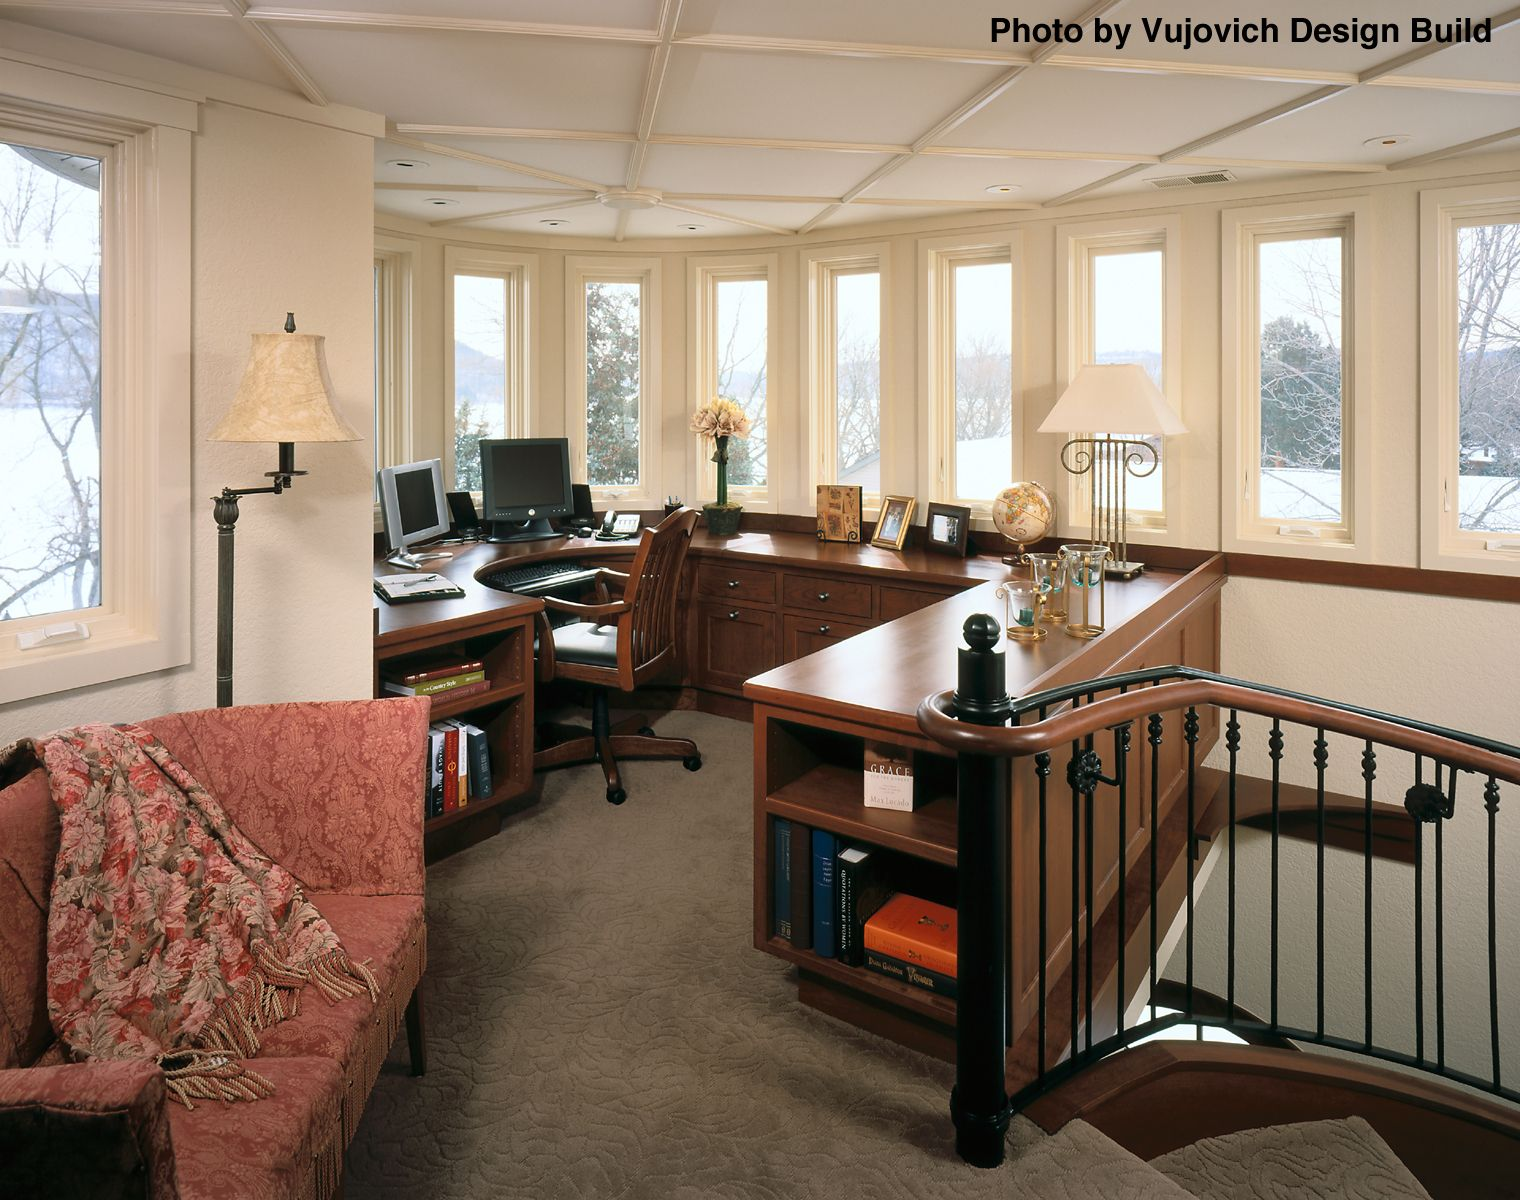 2018 Carpet Costs | Prices For New Carpeting, Stretching, Maintenance.  Traditional Home OfficesTraditional HomesOffice HomeLoft ...